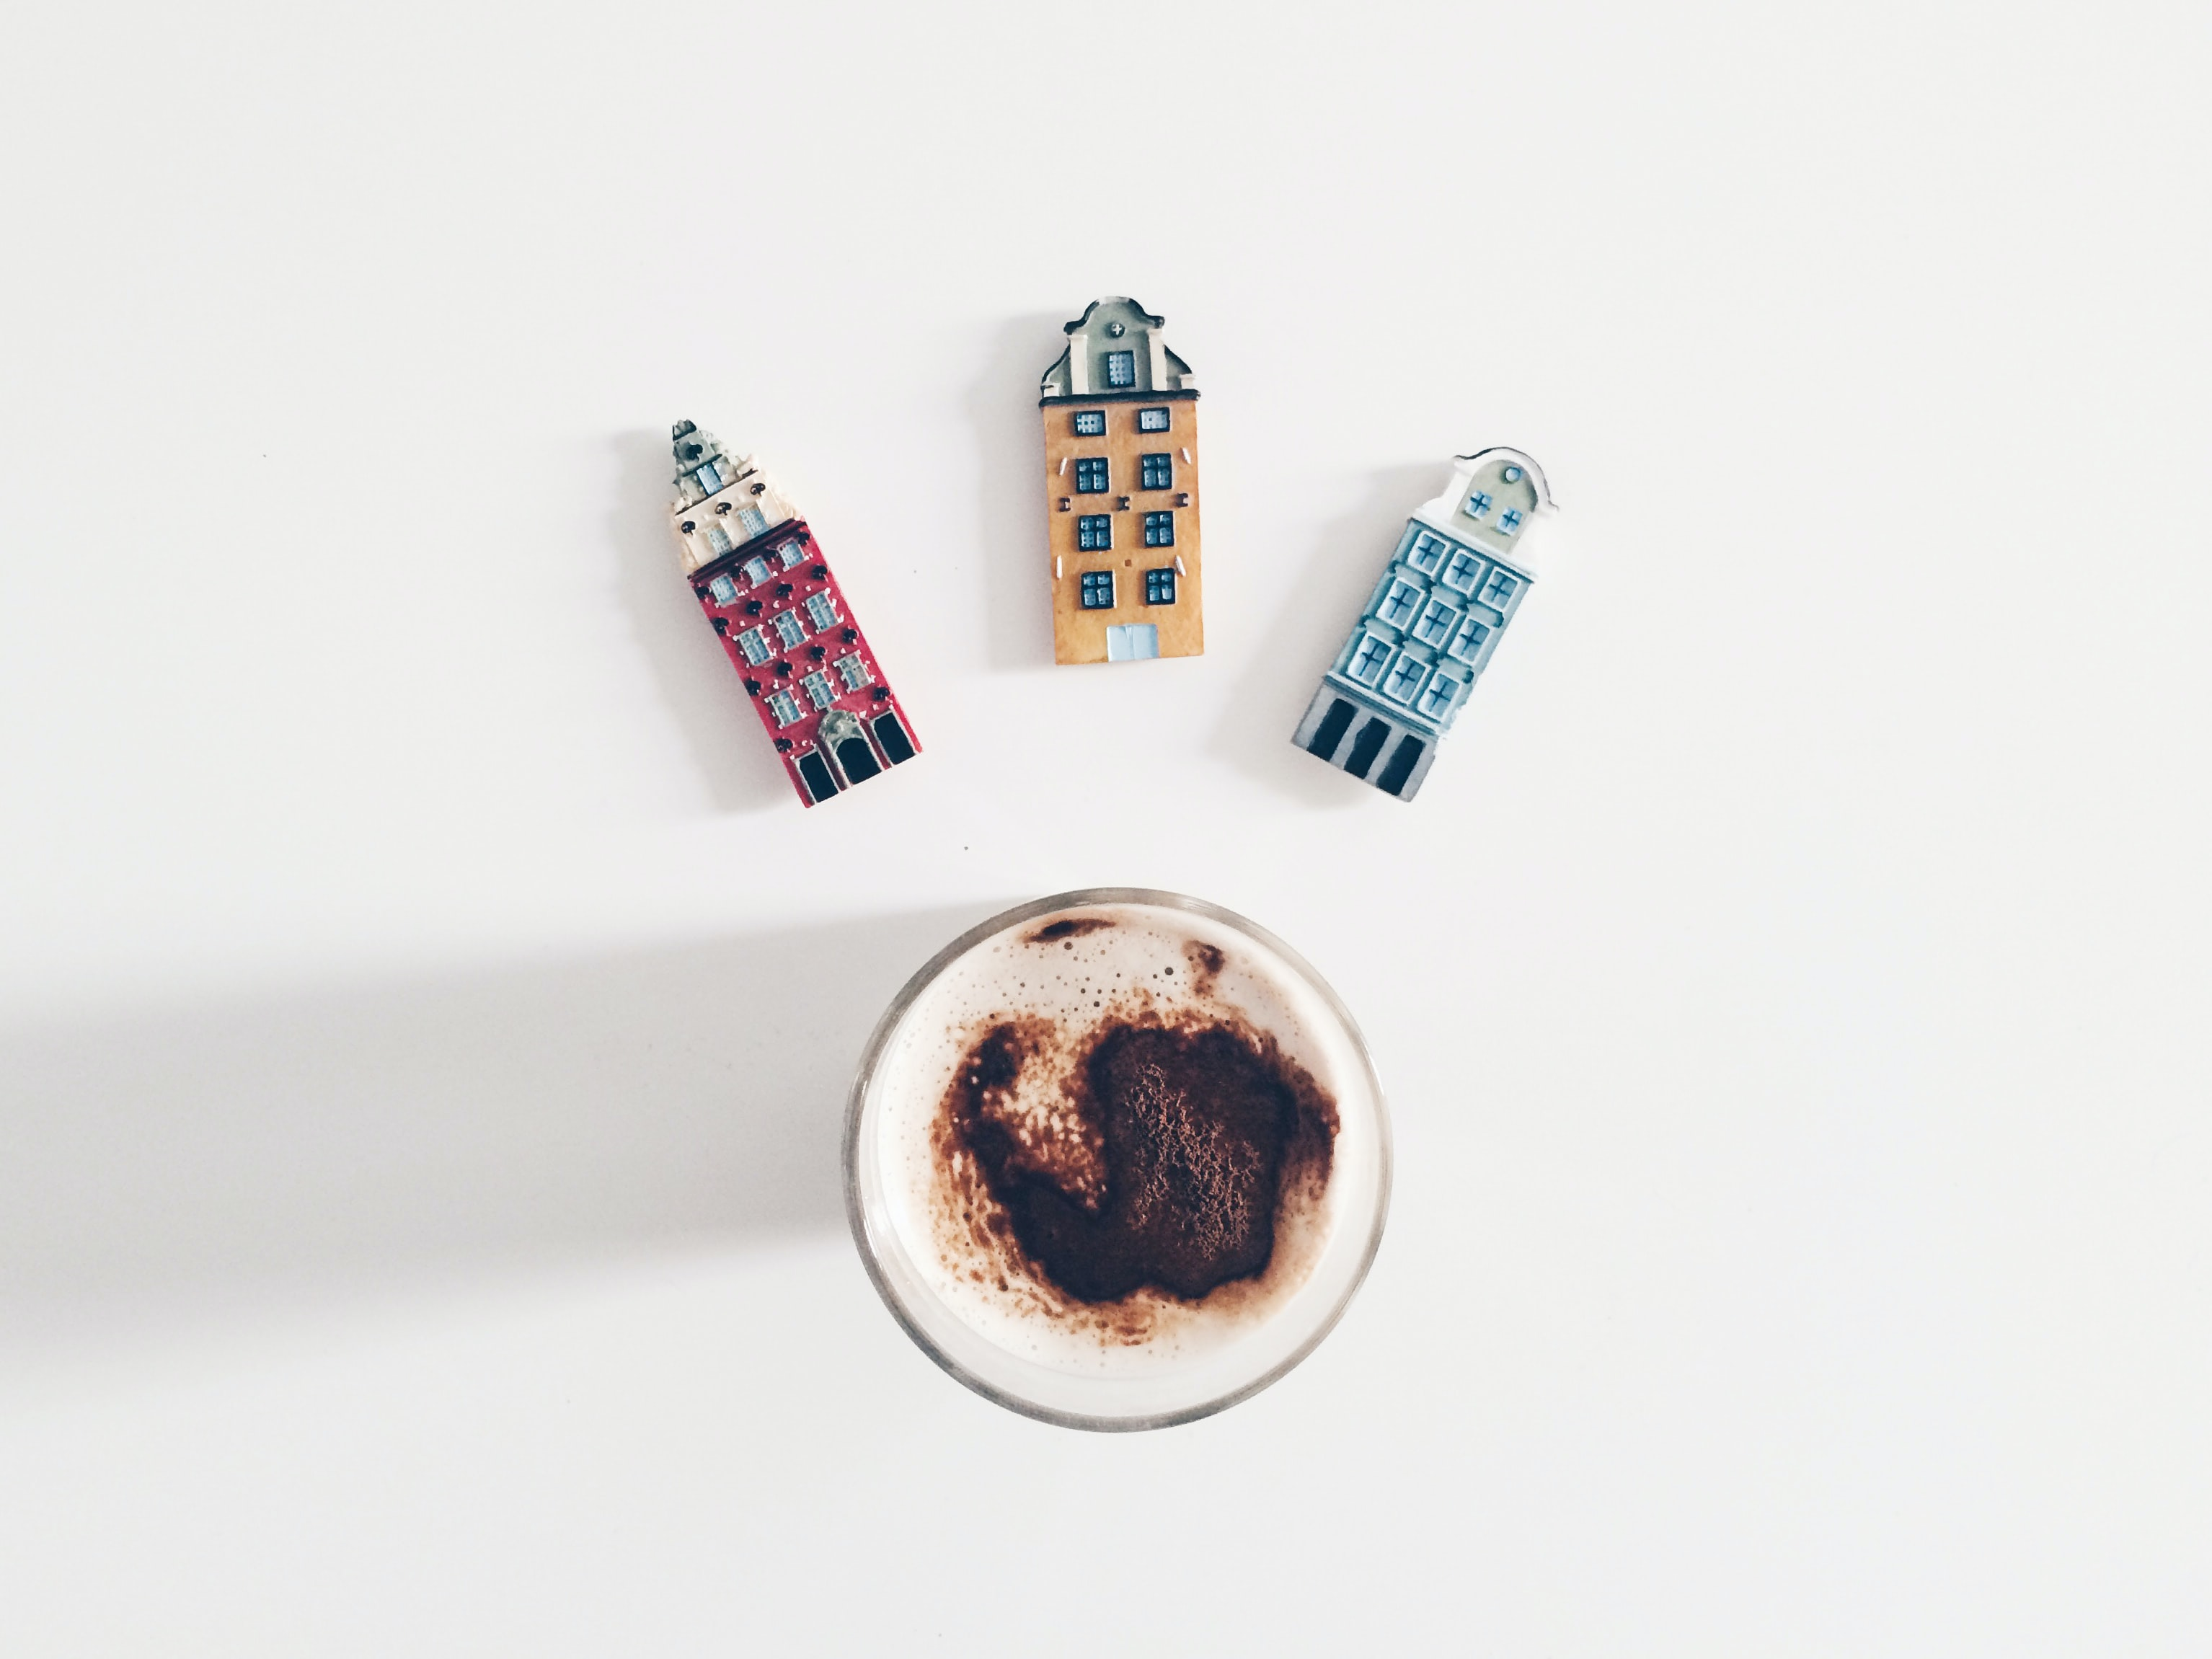 Cappuccino in a clear glass with three magnets in the shape of buildings above the glass